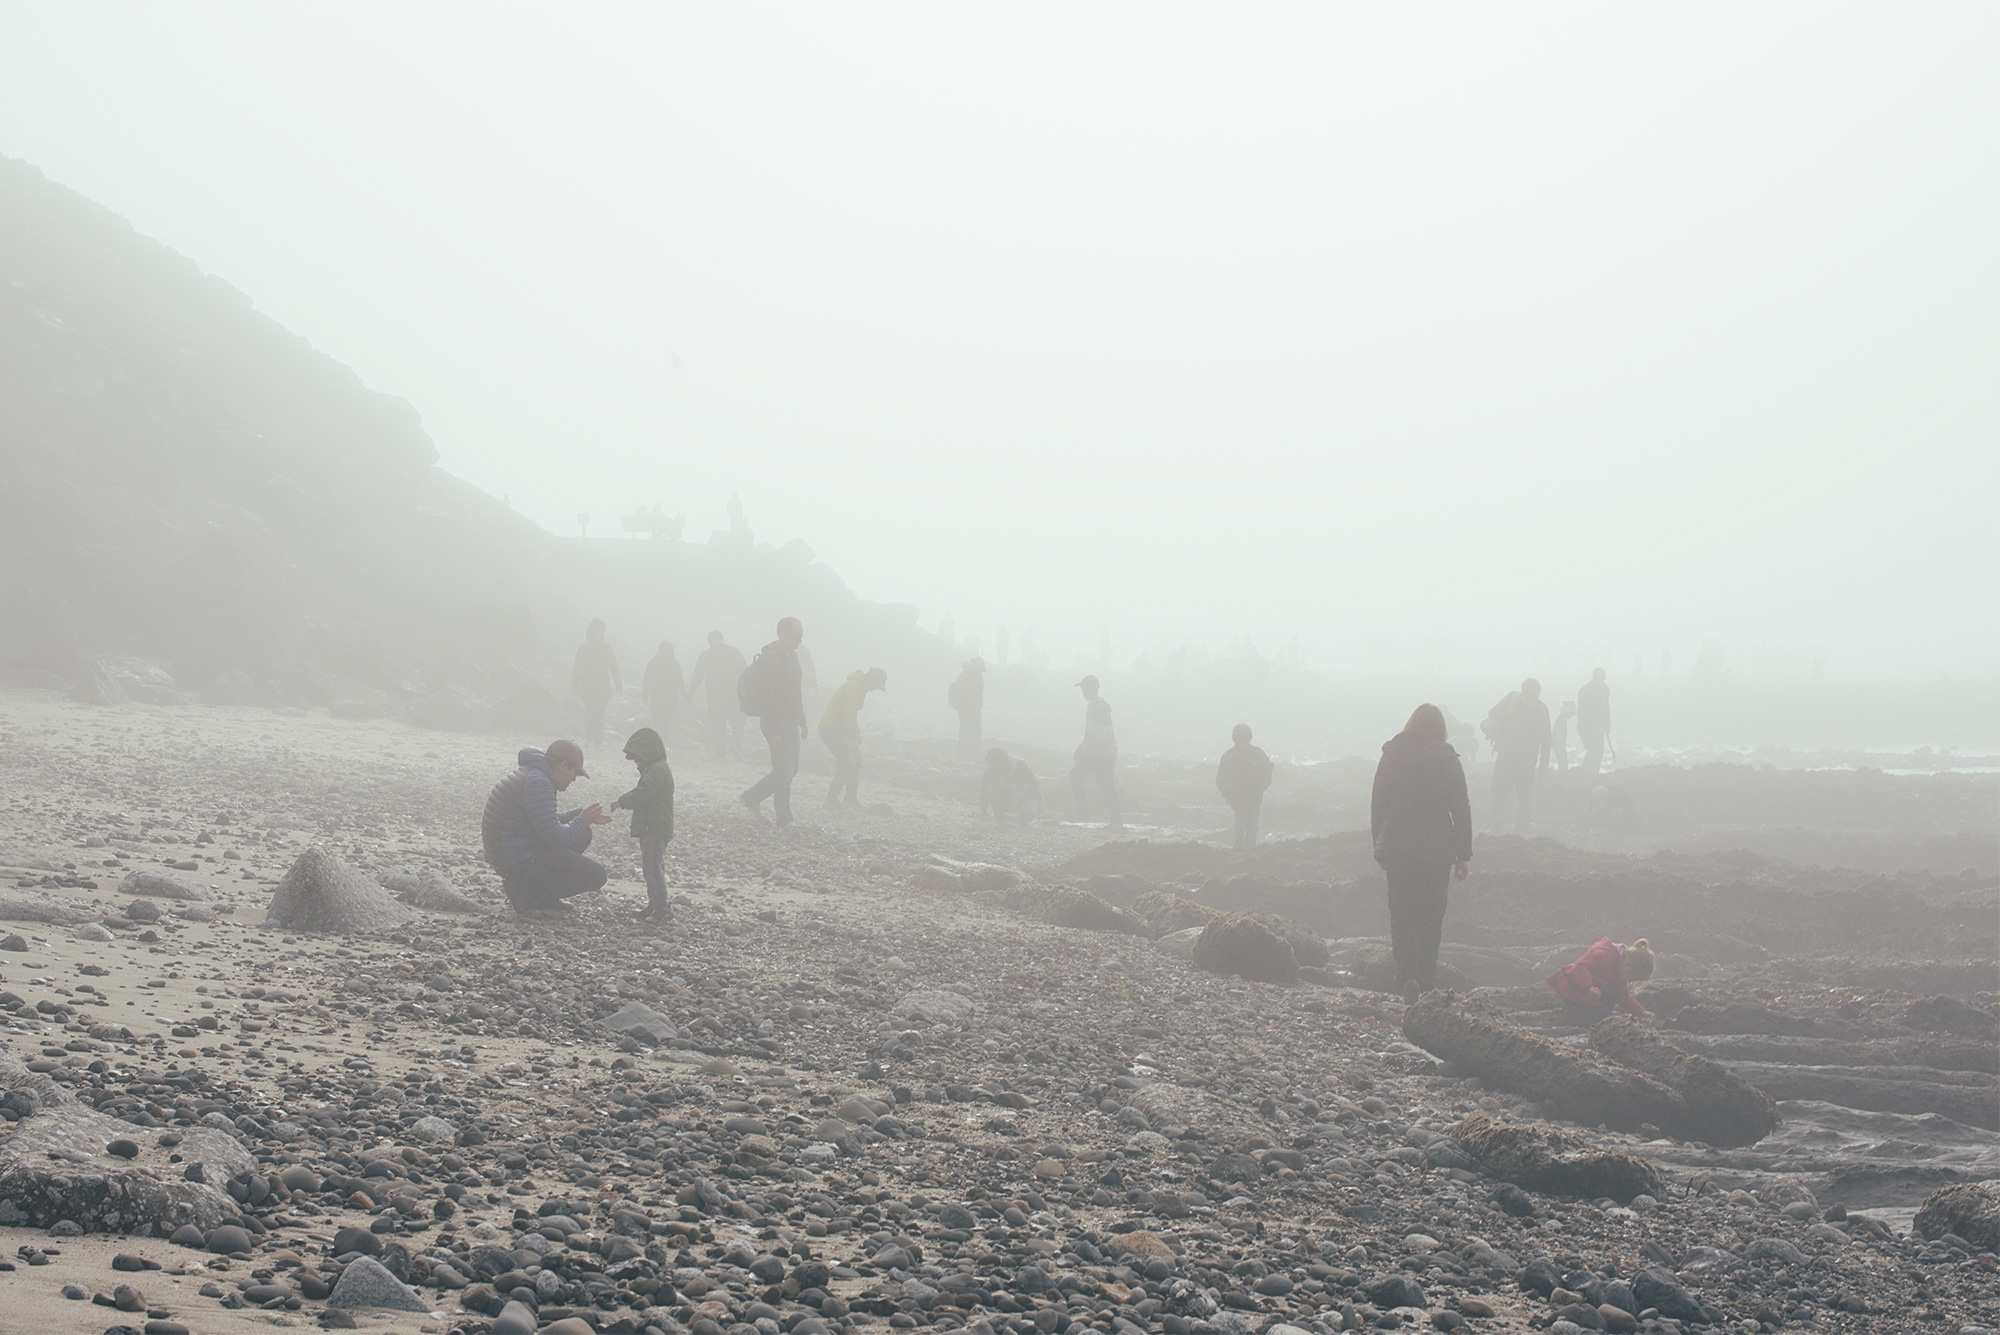 Families on beach during the day with fog.